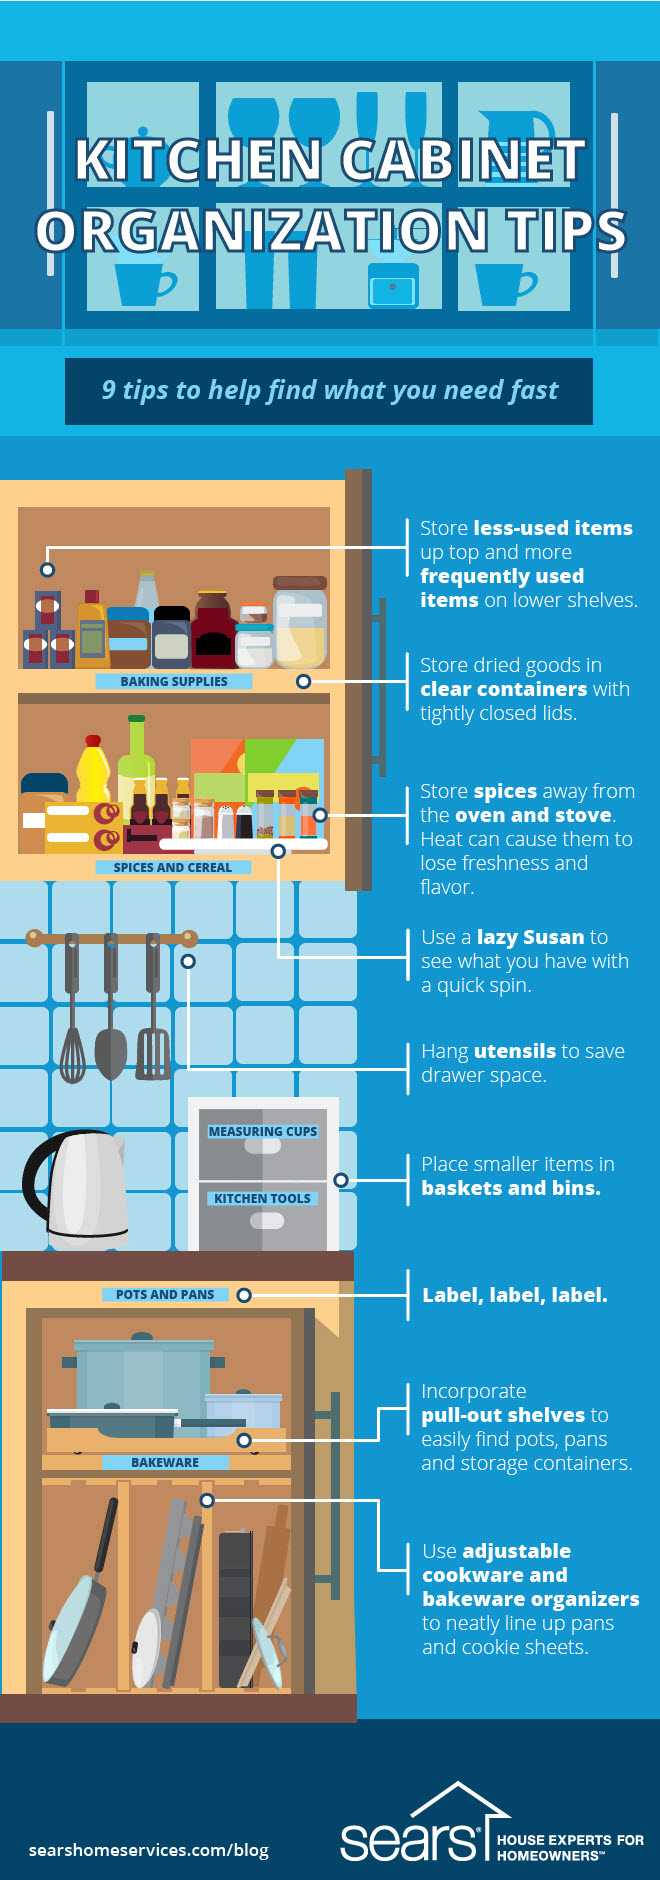 easy ways to organize your kitchen cabinets sears kitchen cabinets Organize your kitchen cabinets